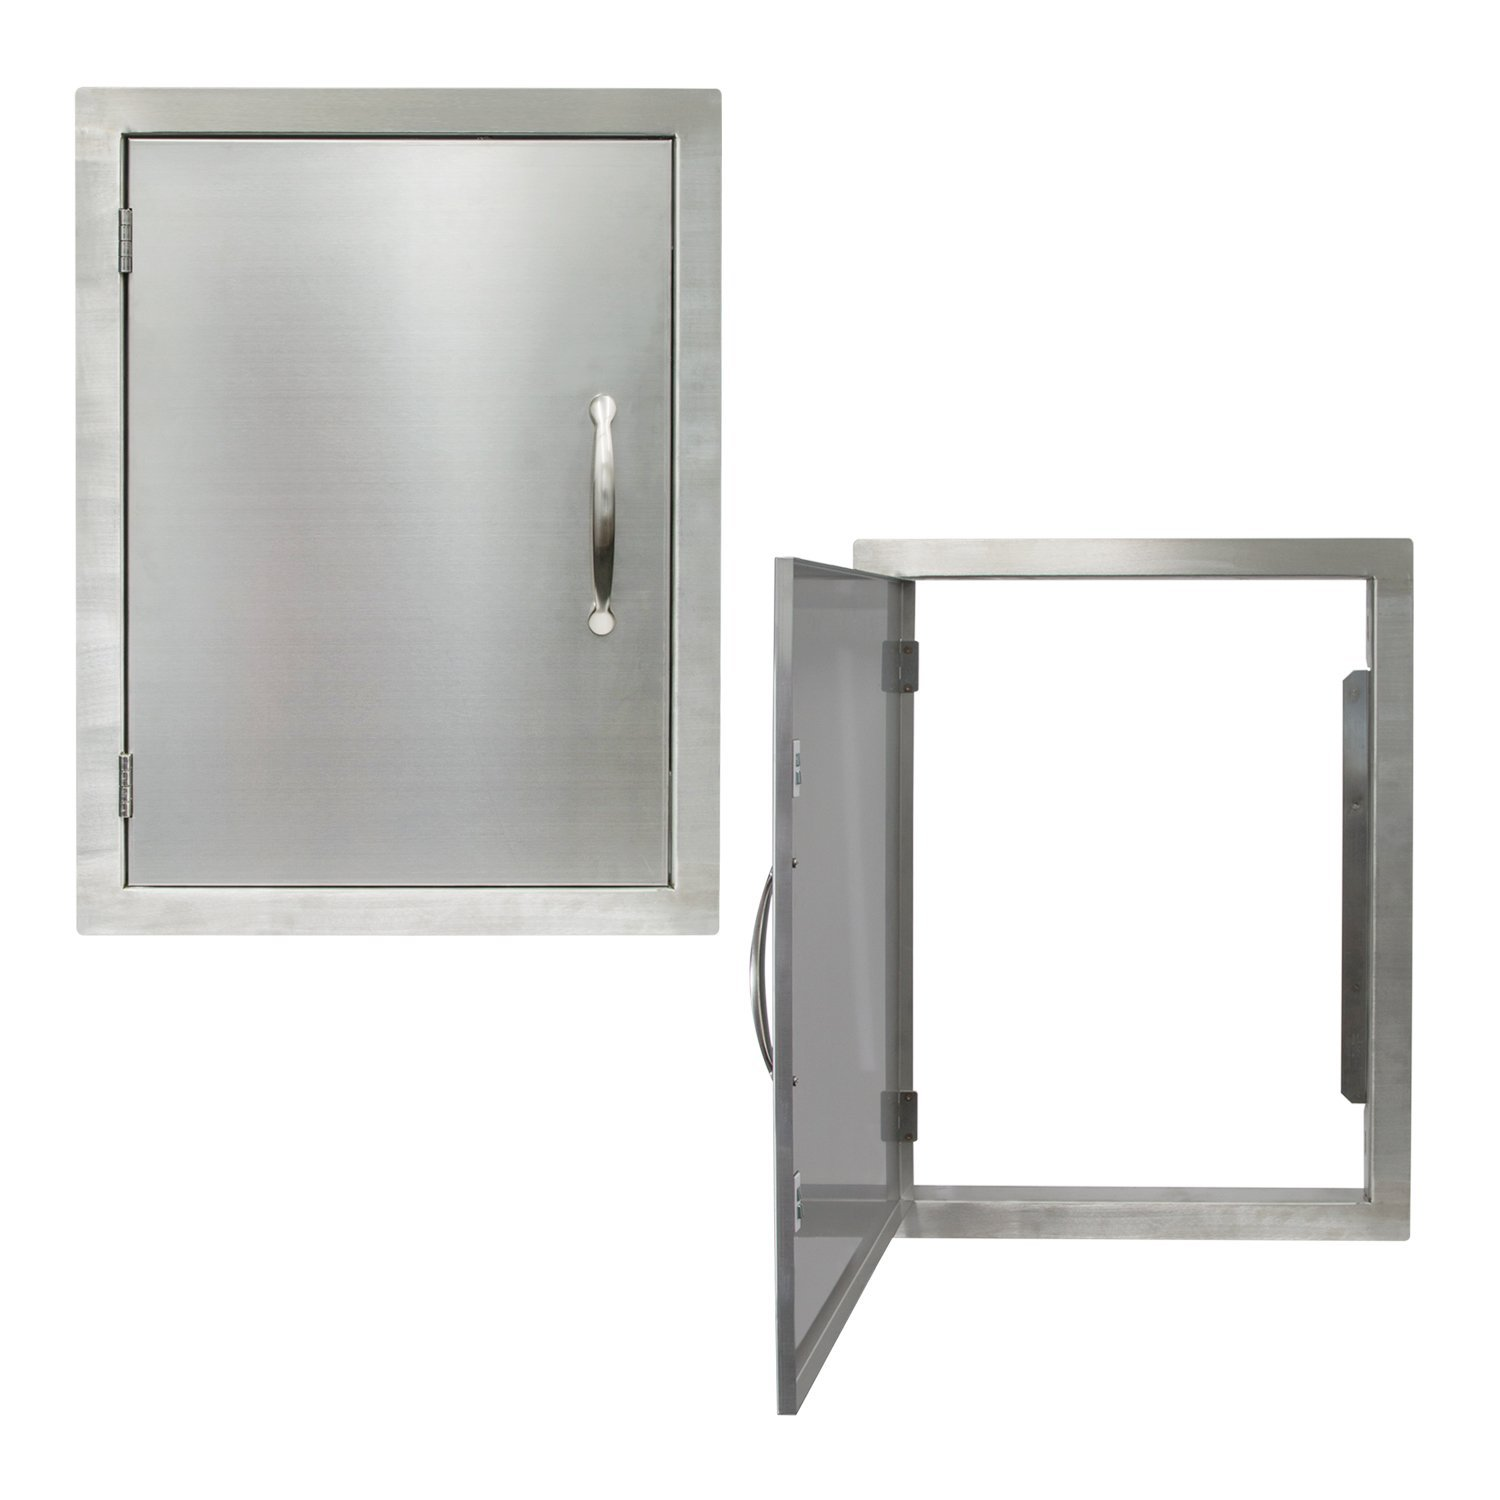 """Houseables BBQ Access Door, Stainless Steel, Vertical, Single, 17 x 24 Inch, Commercial Grade, 0.5"""" Thick Frame, Patio Island Cabinet, Outdoor Barbecue Grill Kitchen, Flush Mount, Chrome Handle"""